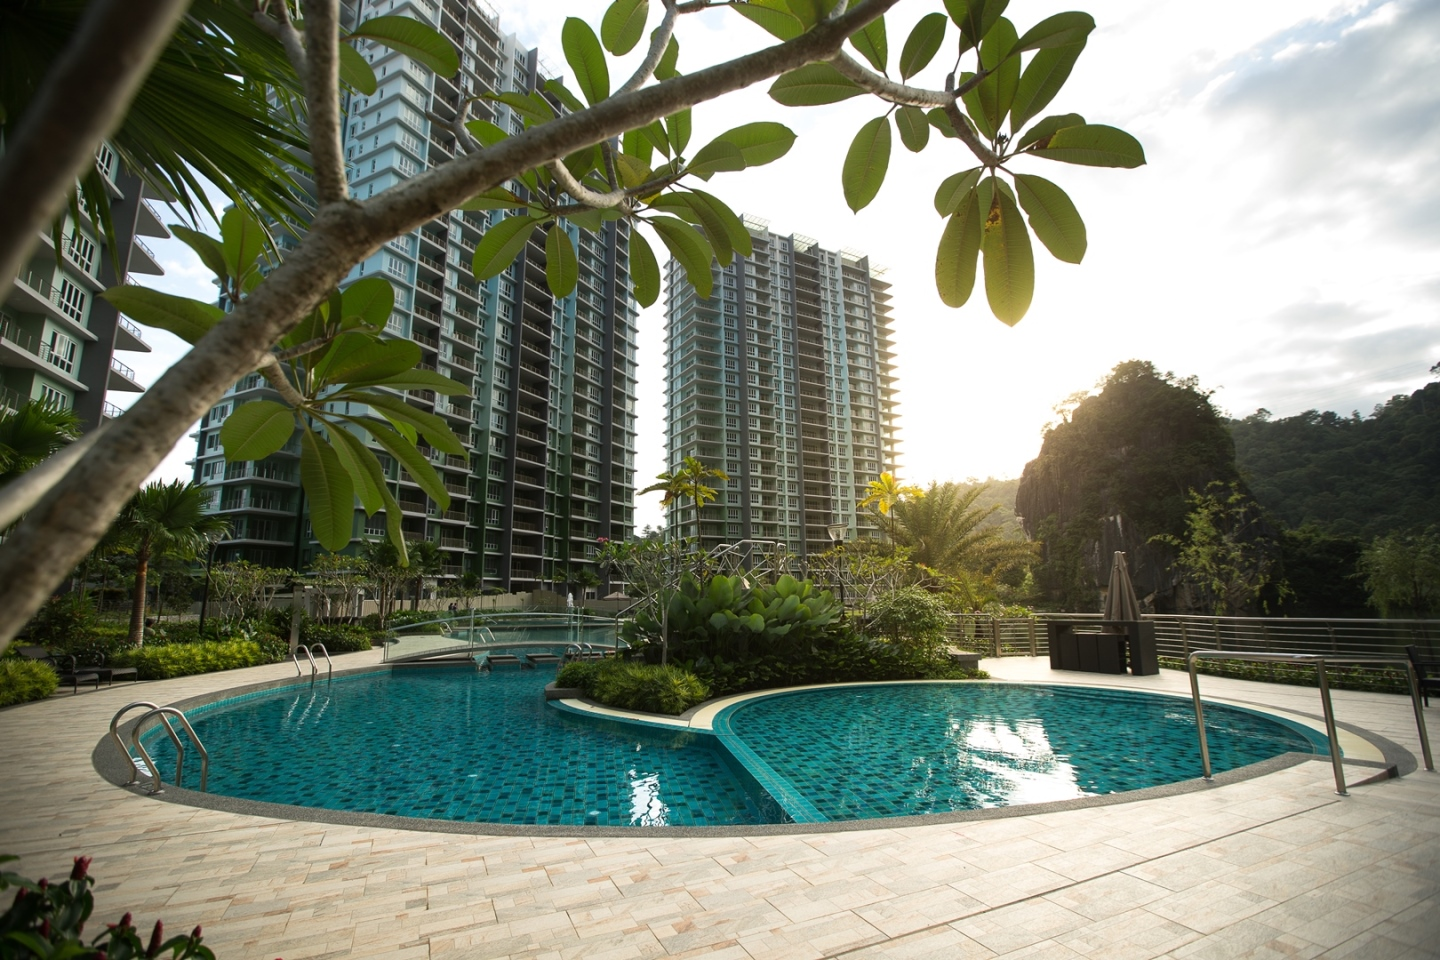 Swimming Pool Level : The swimming pool focus of family activities haven